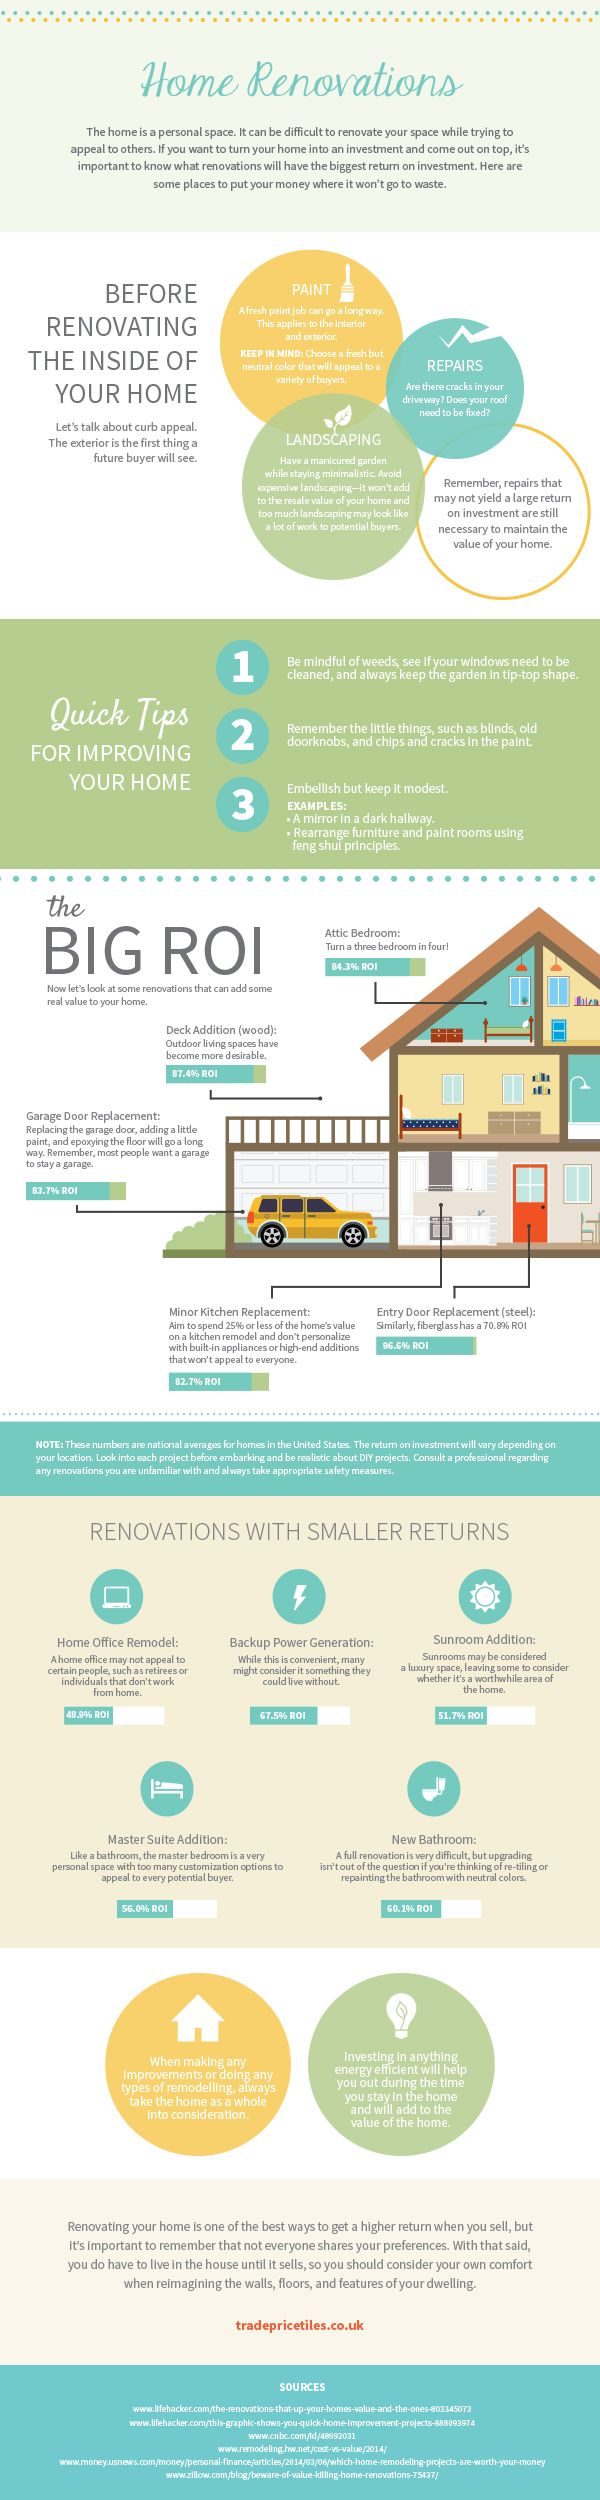 MAXIMISING PROPERTY VALUE WITH HOME RENOVATIONS [INFOGRAPHIC]